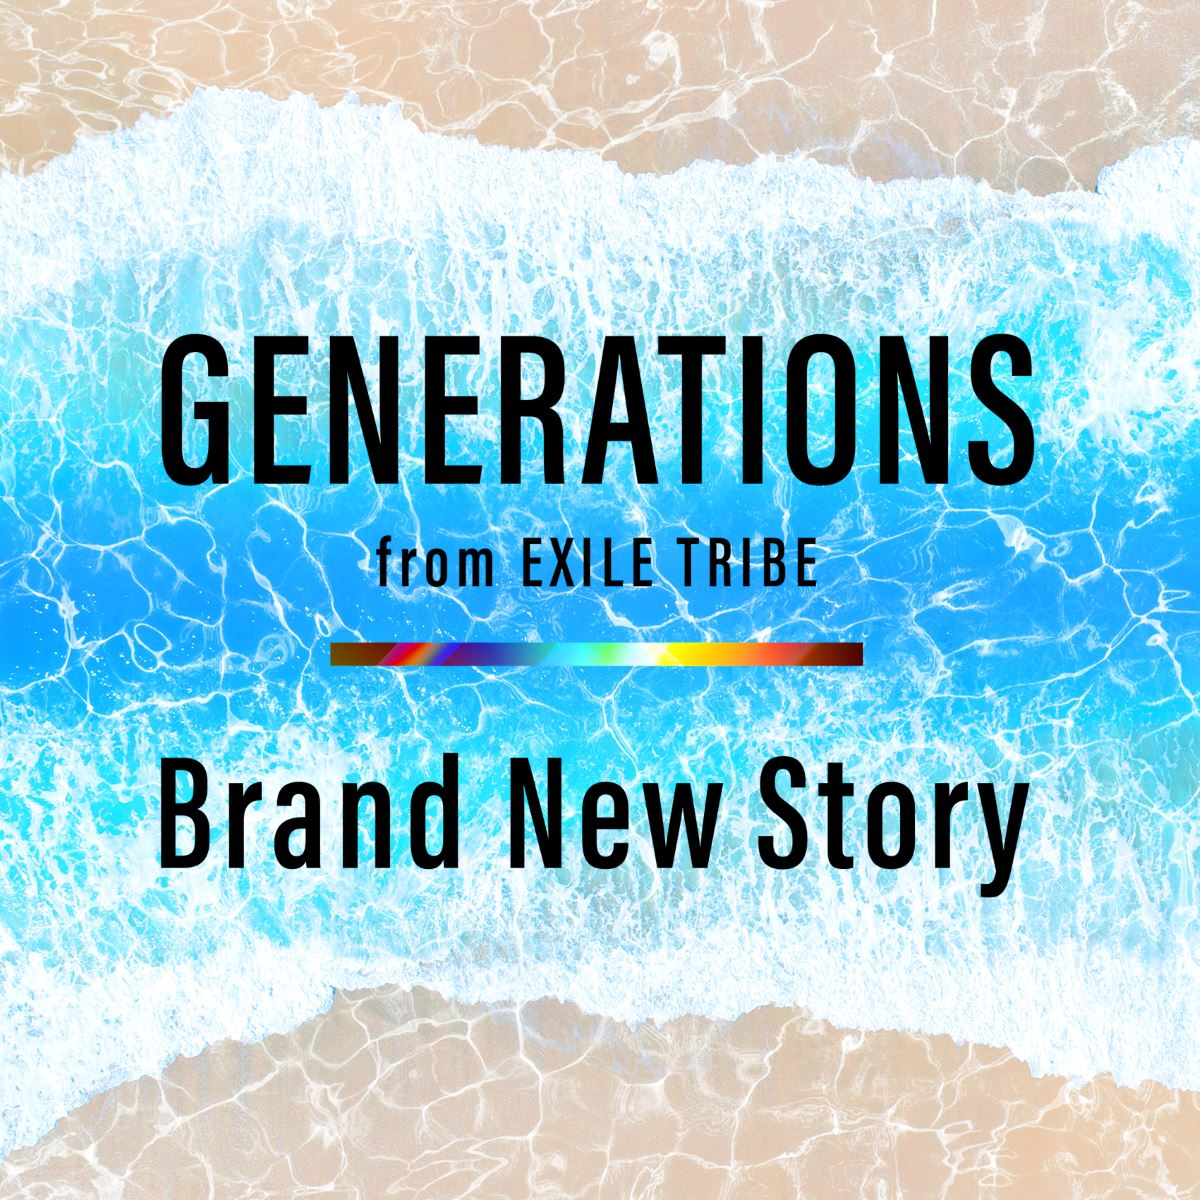 『GENERATIONS from EXILE TRIBE Brand New Story 歌詞』収録の『Brand New Story』ジャケット